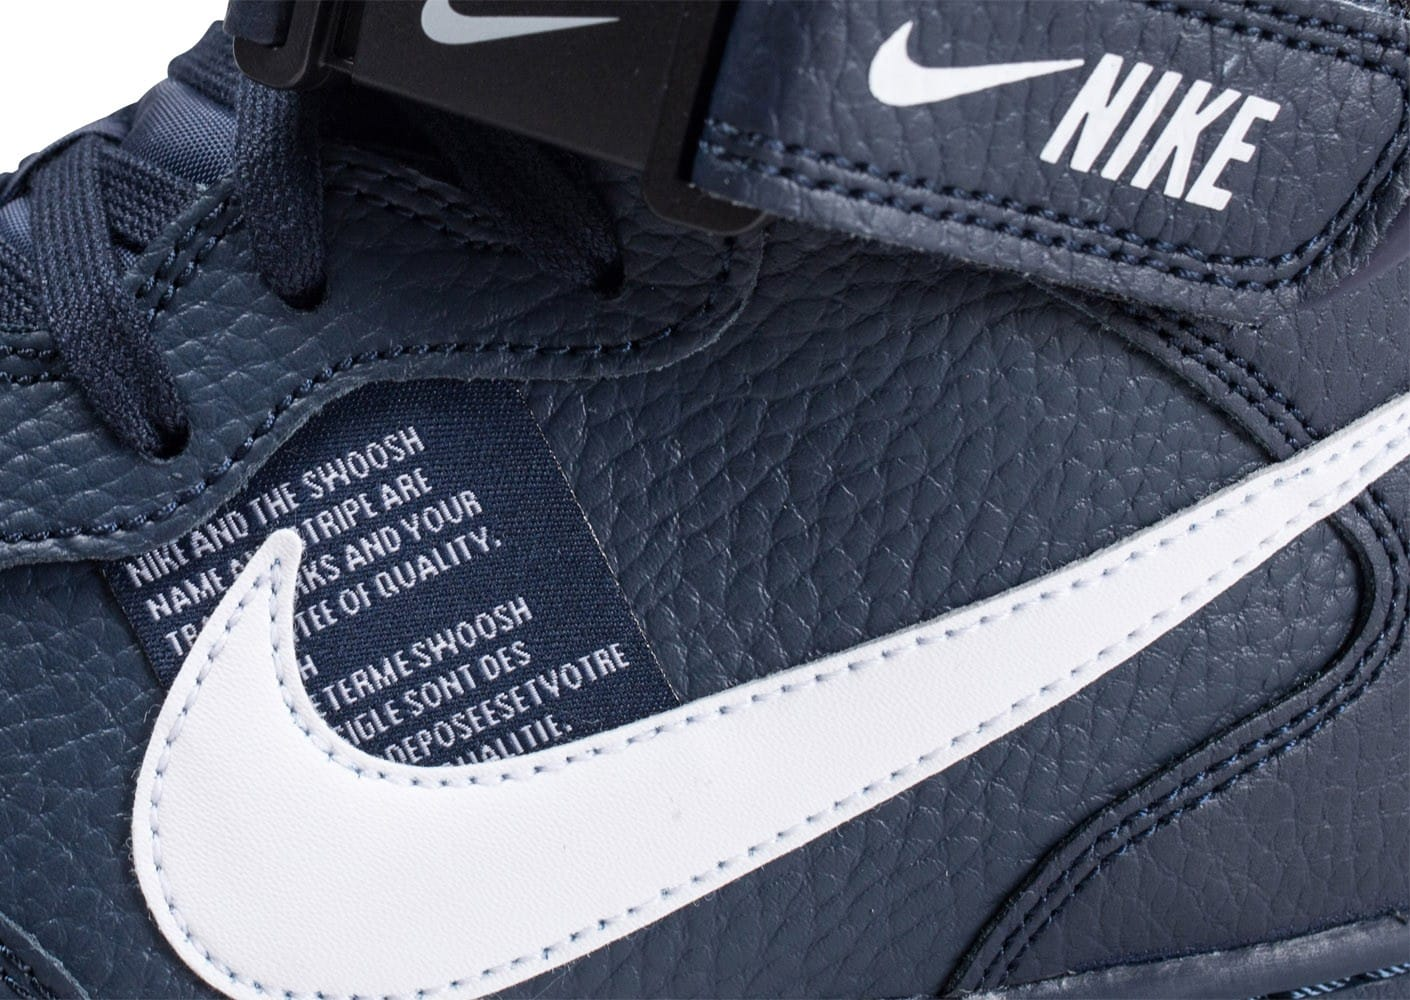 Nike Air Force 1 Mid '07 LV8 Utility ''Obsidian'' Sneaker